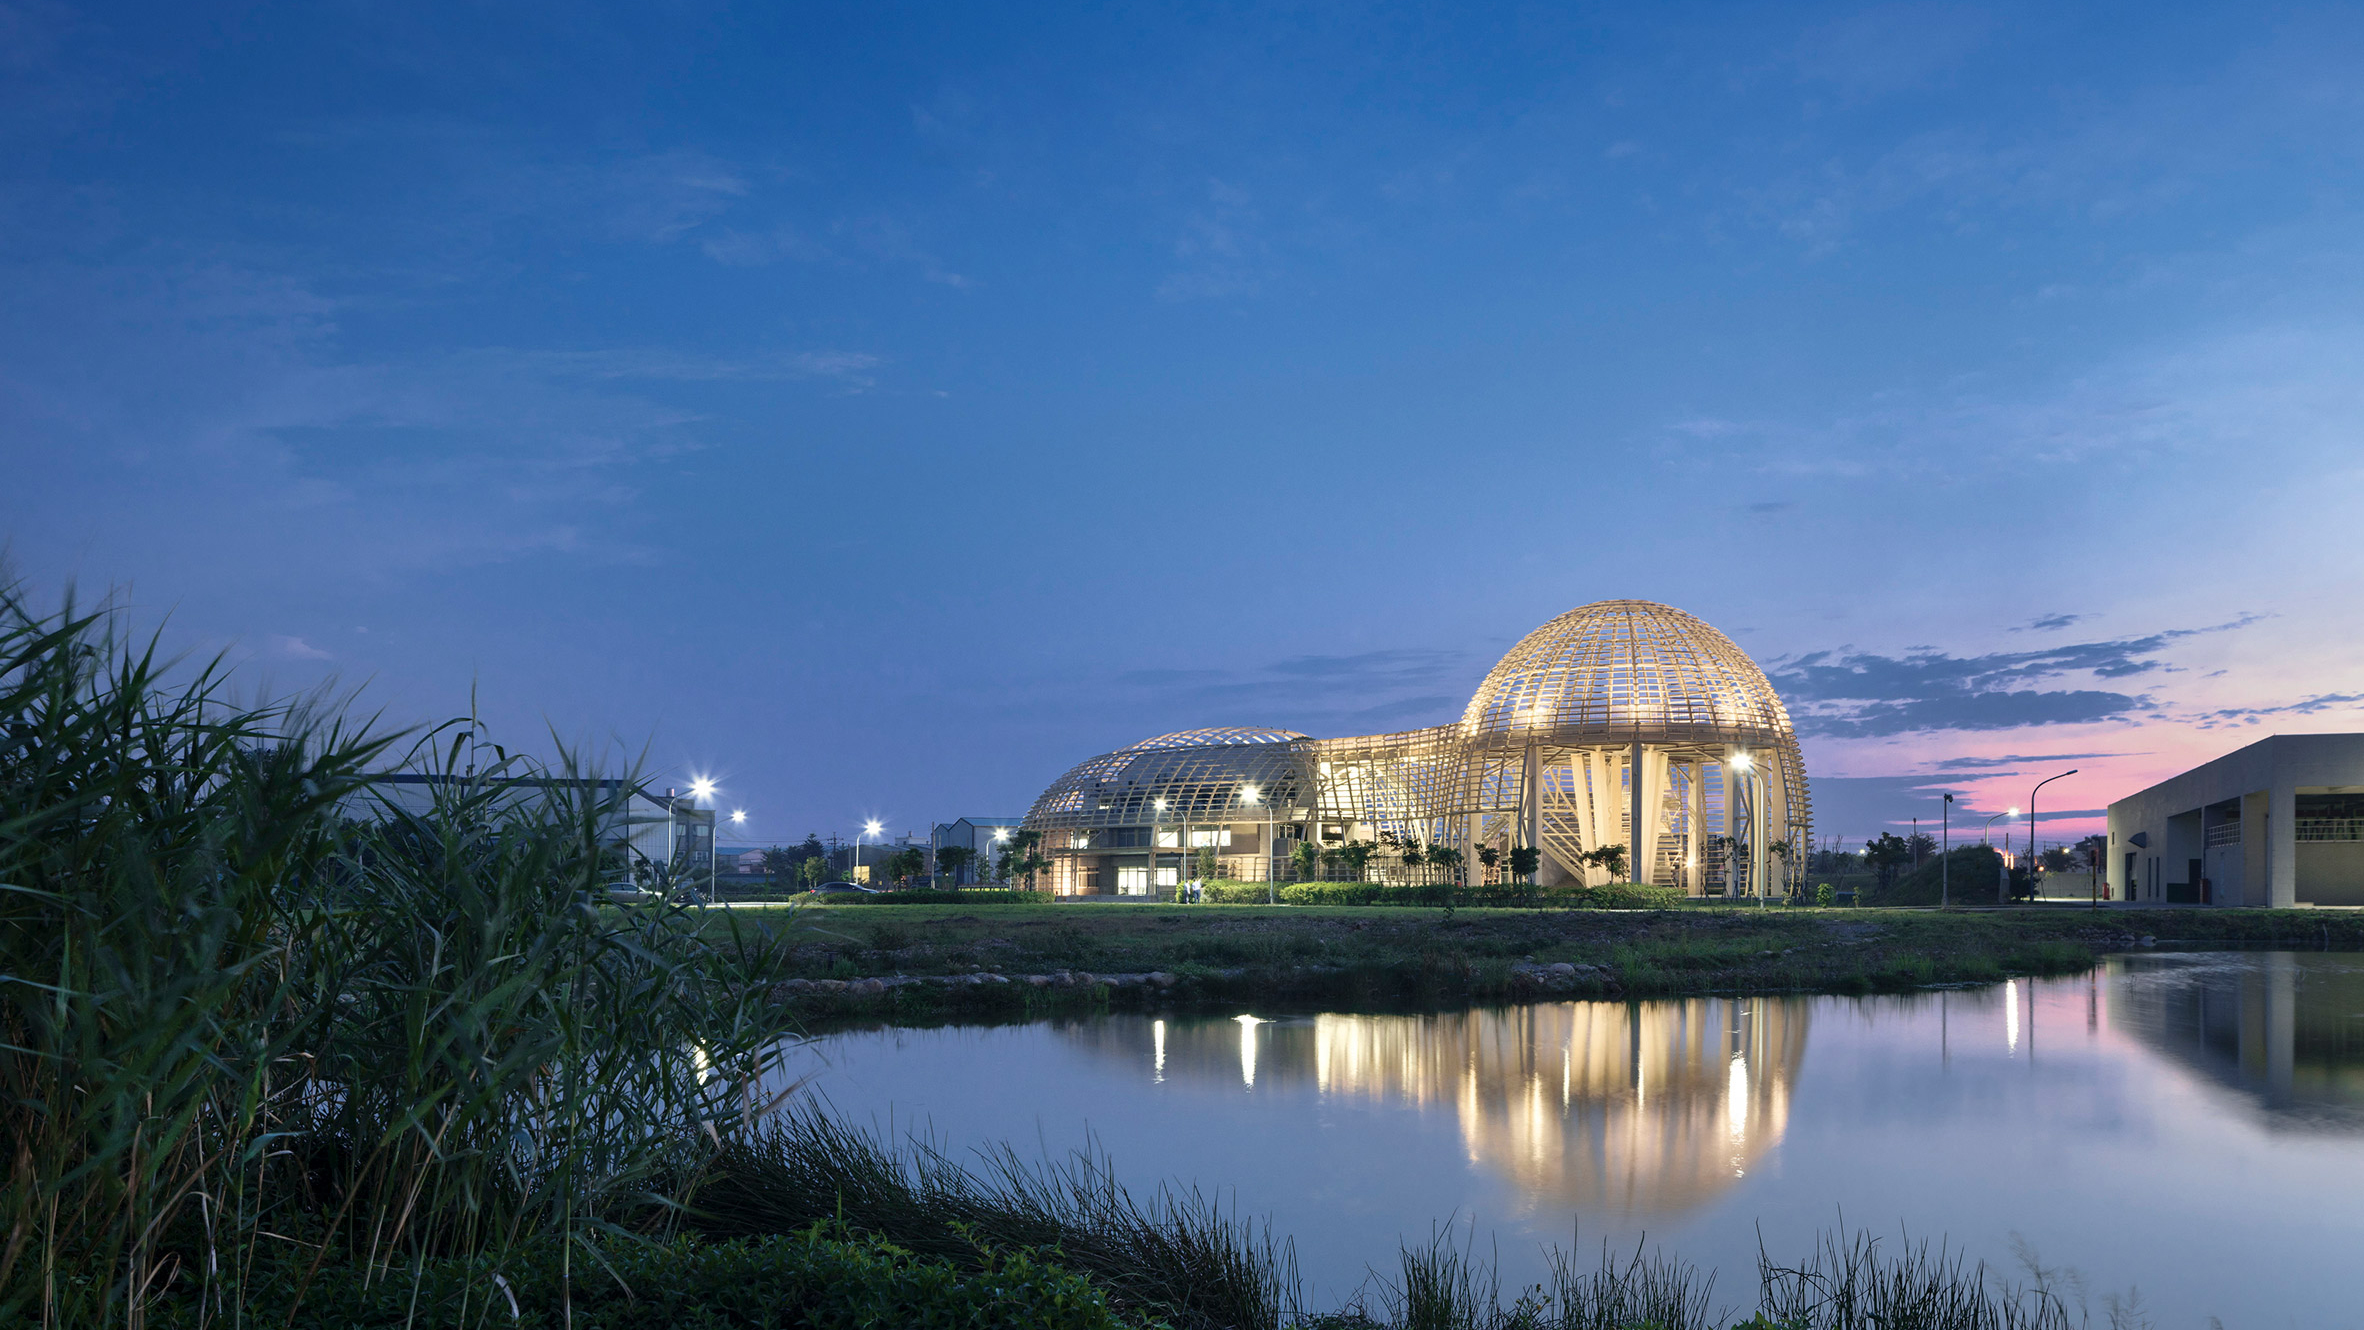 1_taoyuan-sewage-treatment-project-habitech-architects-taiwan-architecture_dezeen_2364_hero.jpg